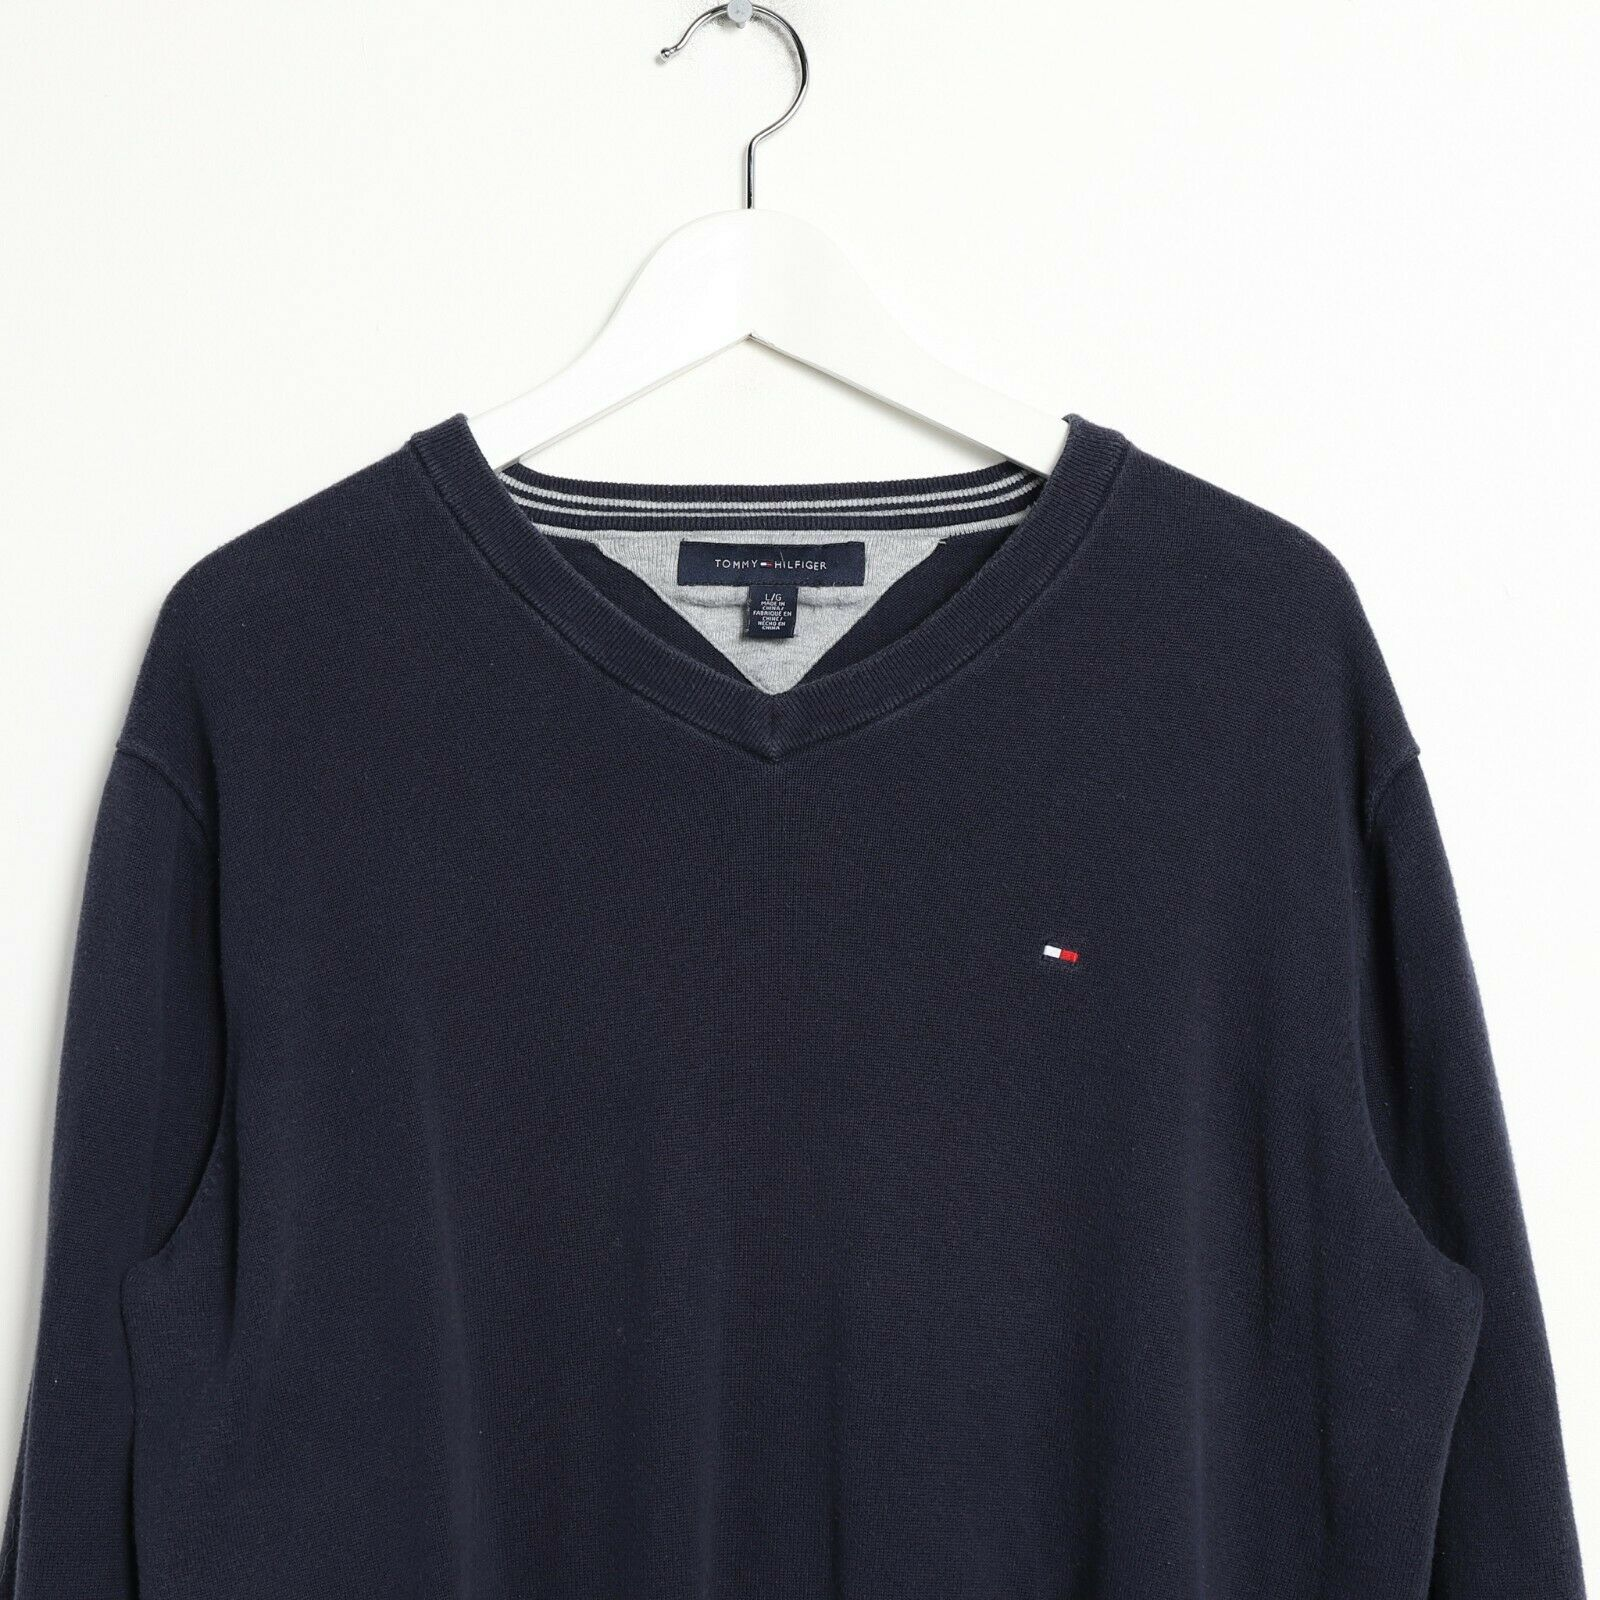 Vintage TOMMY HILFIGER Small Logo Knitted Sweatshirt Jumper Navy Blue | Large L